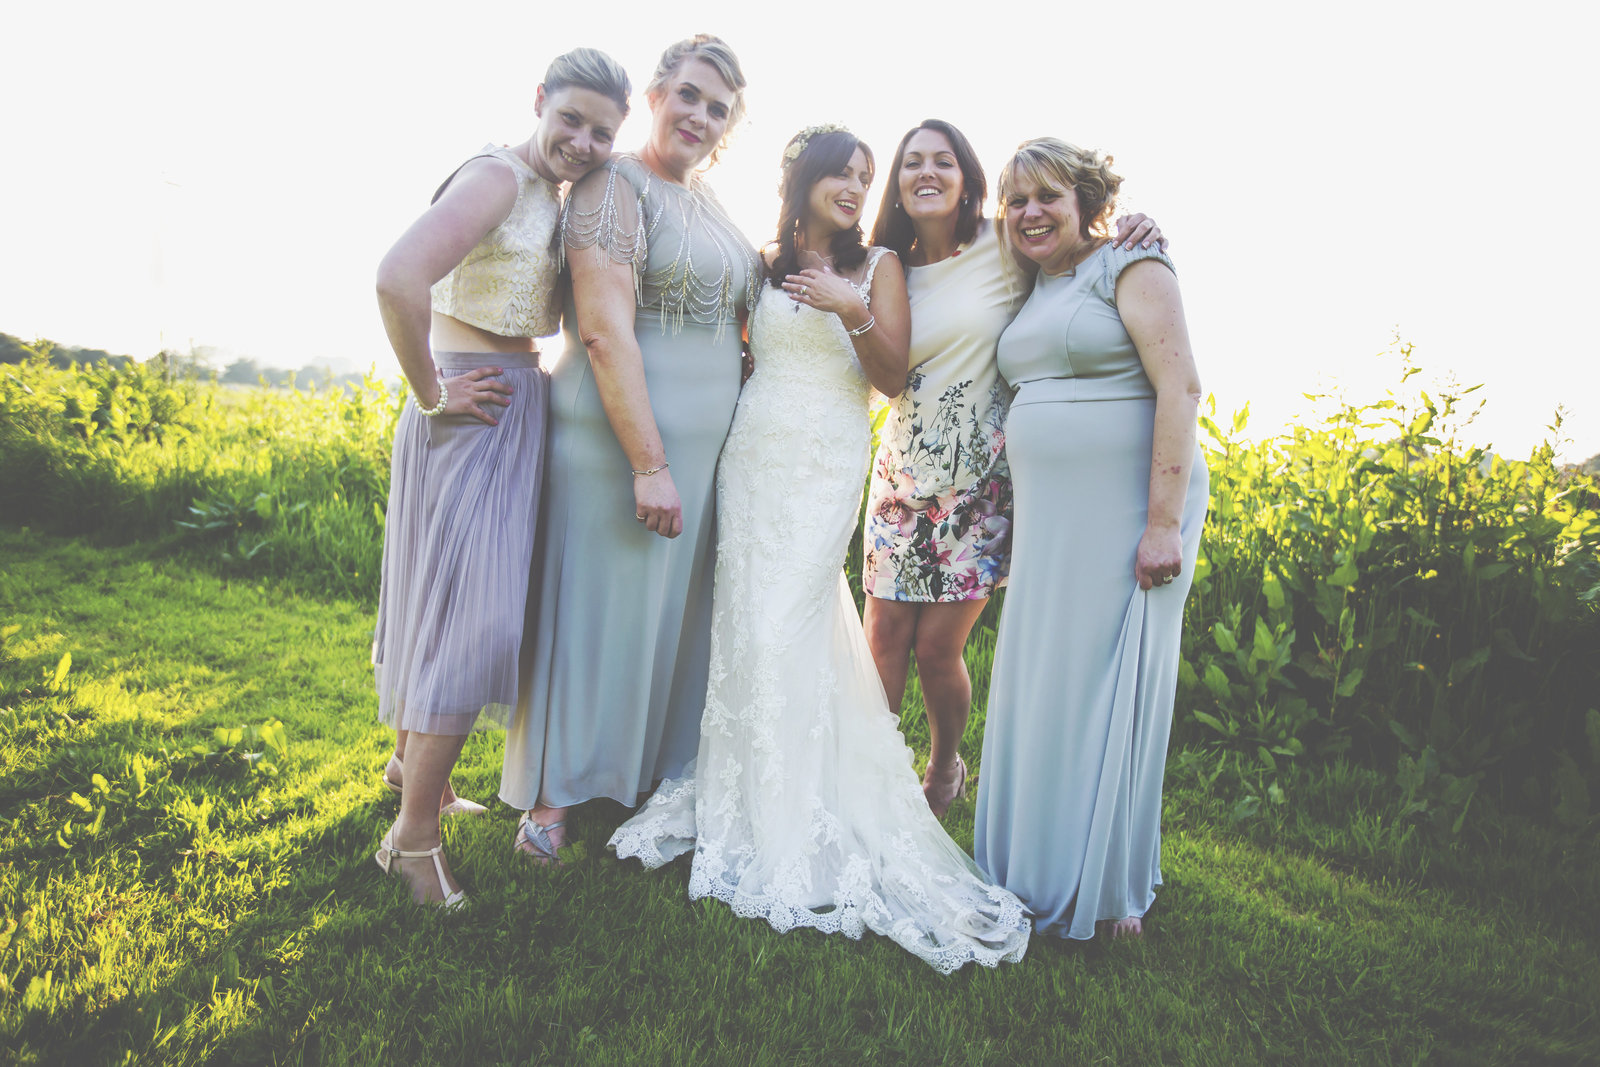 Wedding photographer from Norwich Jessica Elisze photographs a bride and her friends.